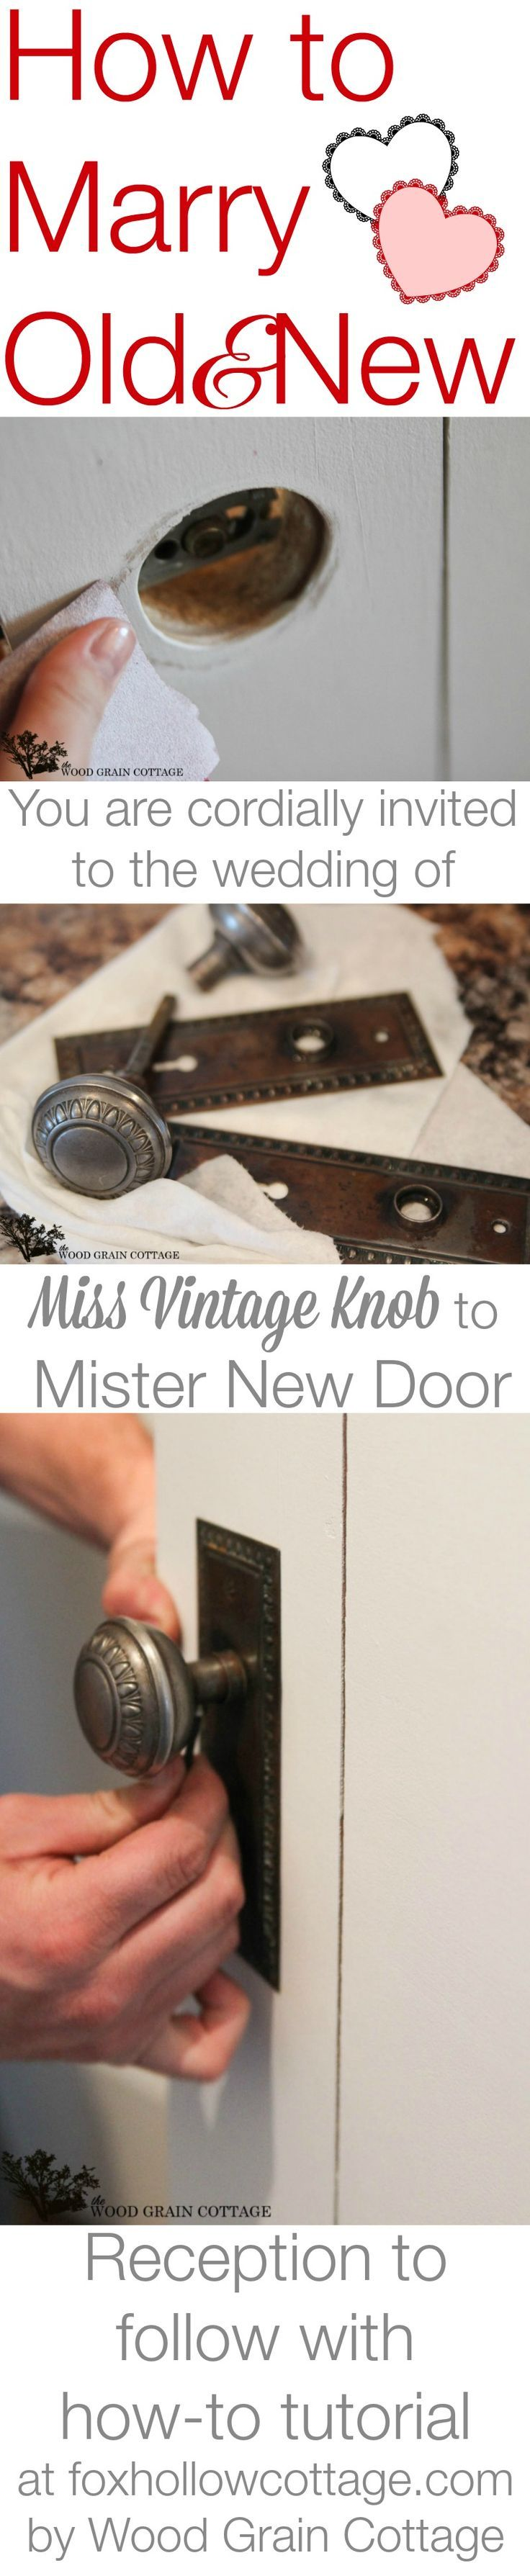 Awesome How To Install A Vintage Door Knob On A New House Door! DIY Home Impr